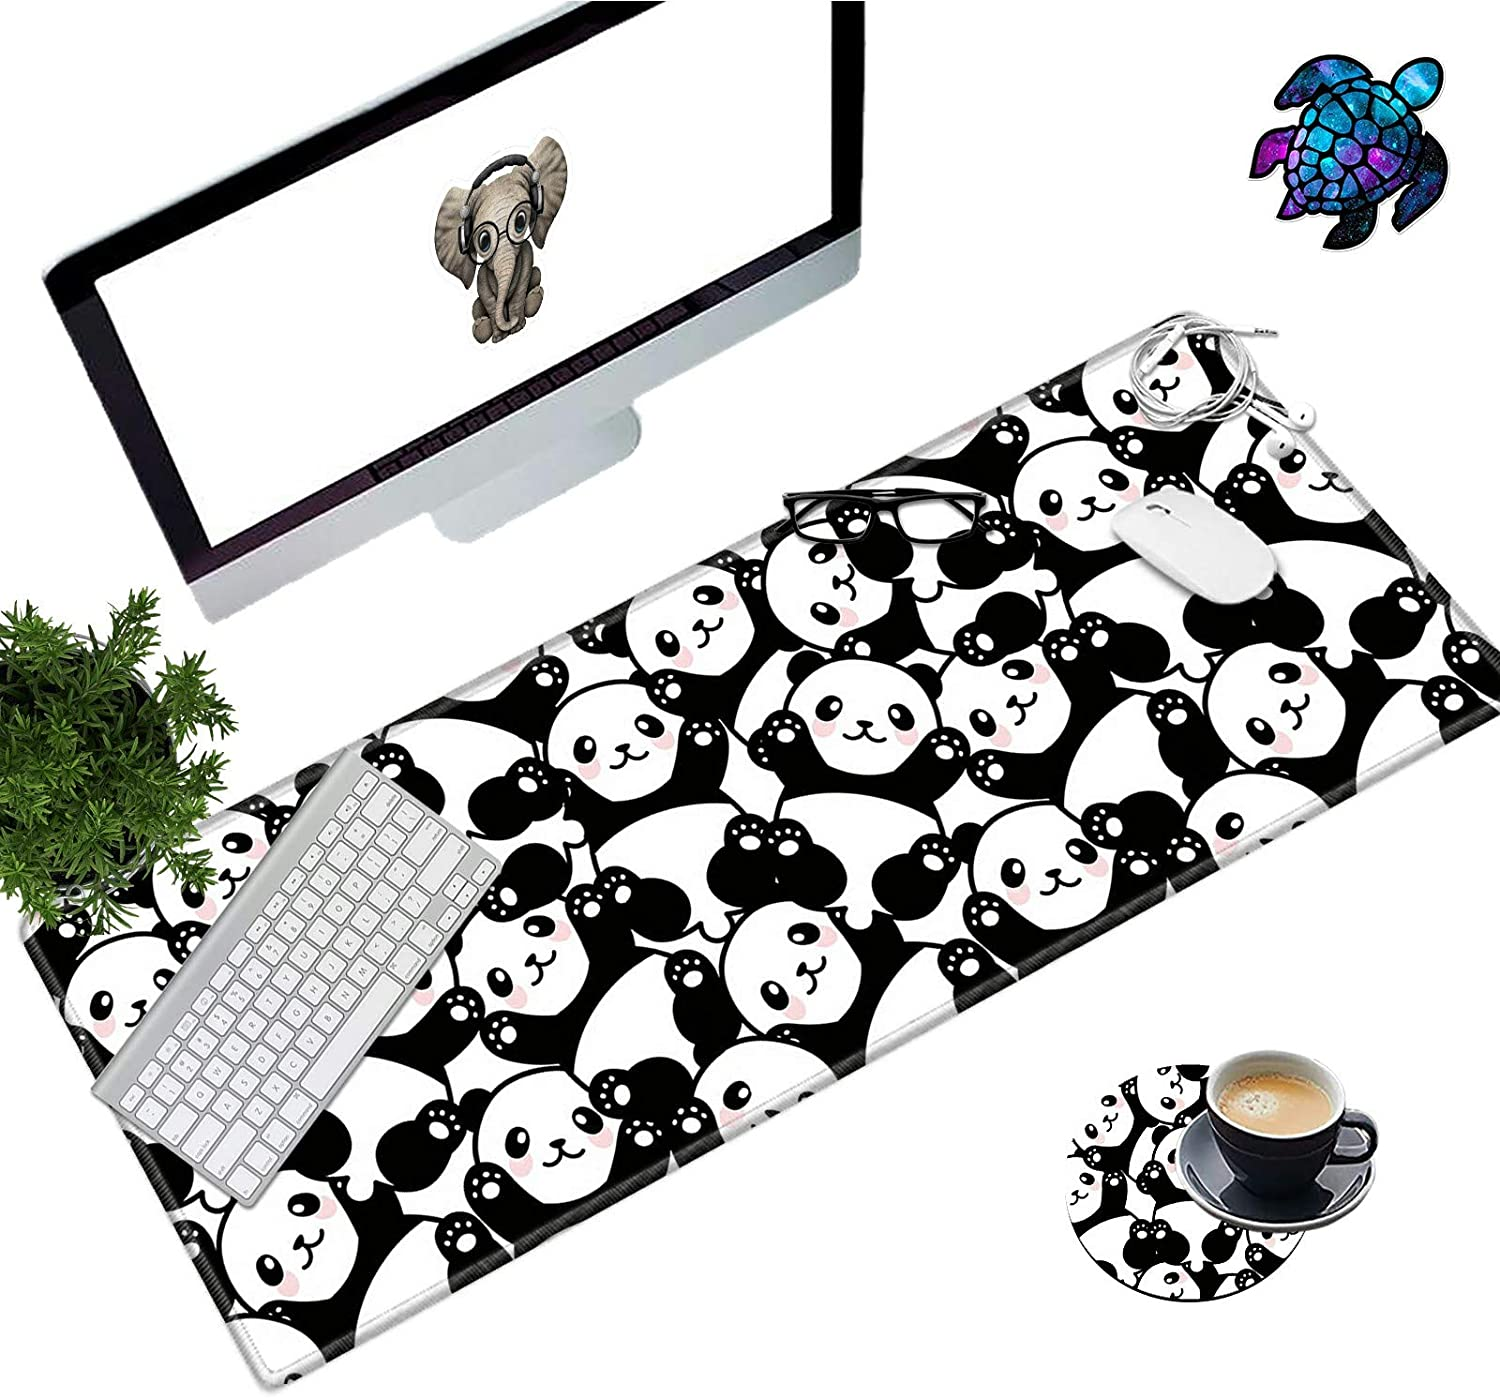 35% OFF Desk Max 62% OFF Pad Mat Large Mouse XL Cu Gaming Extended Mousepad with